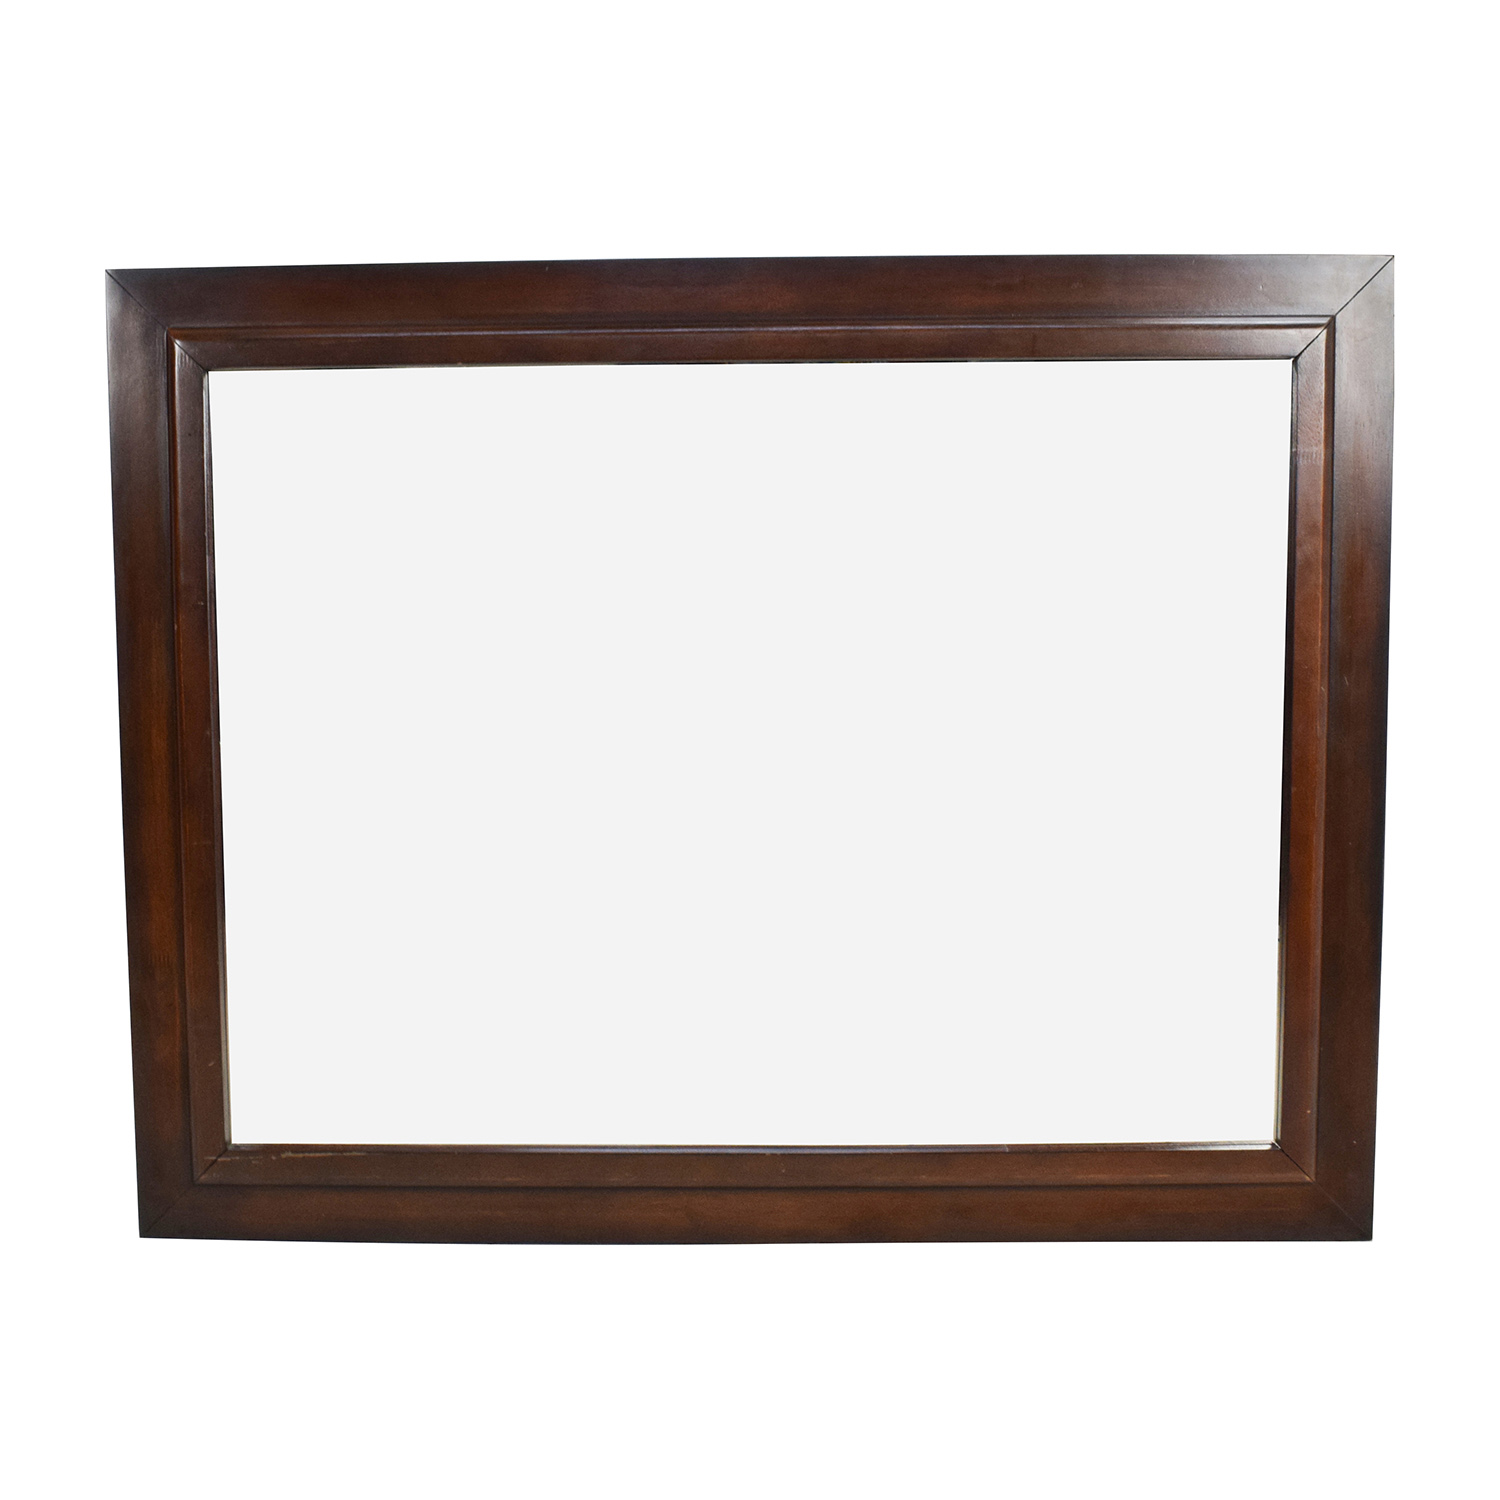 80 off large square wood framed wall mirror decor for Large wall mirror wood frame